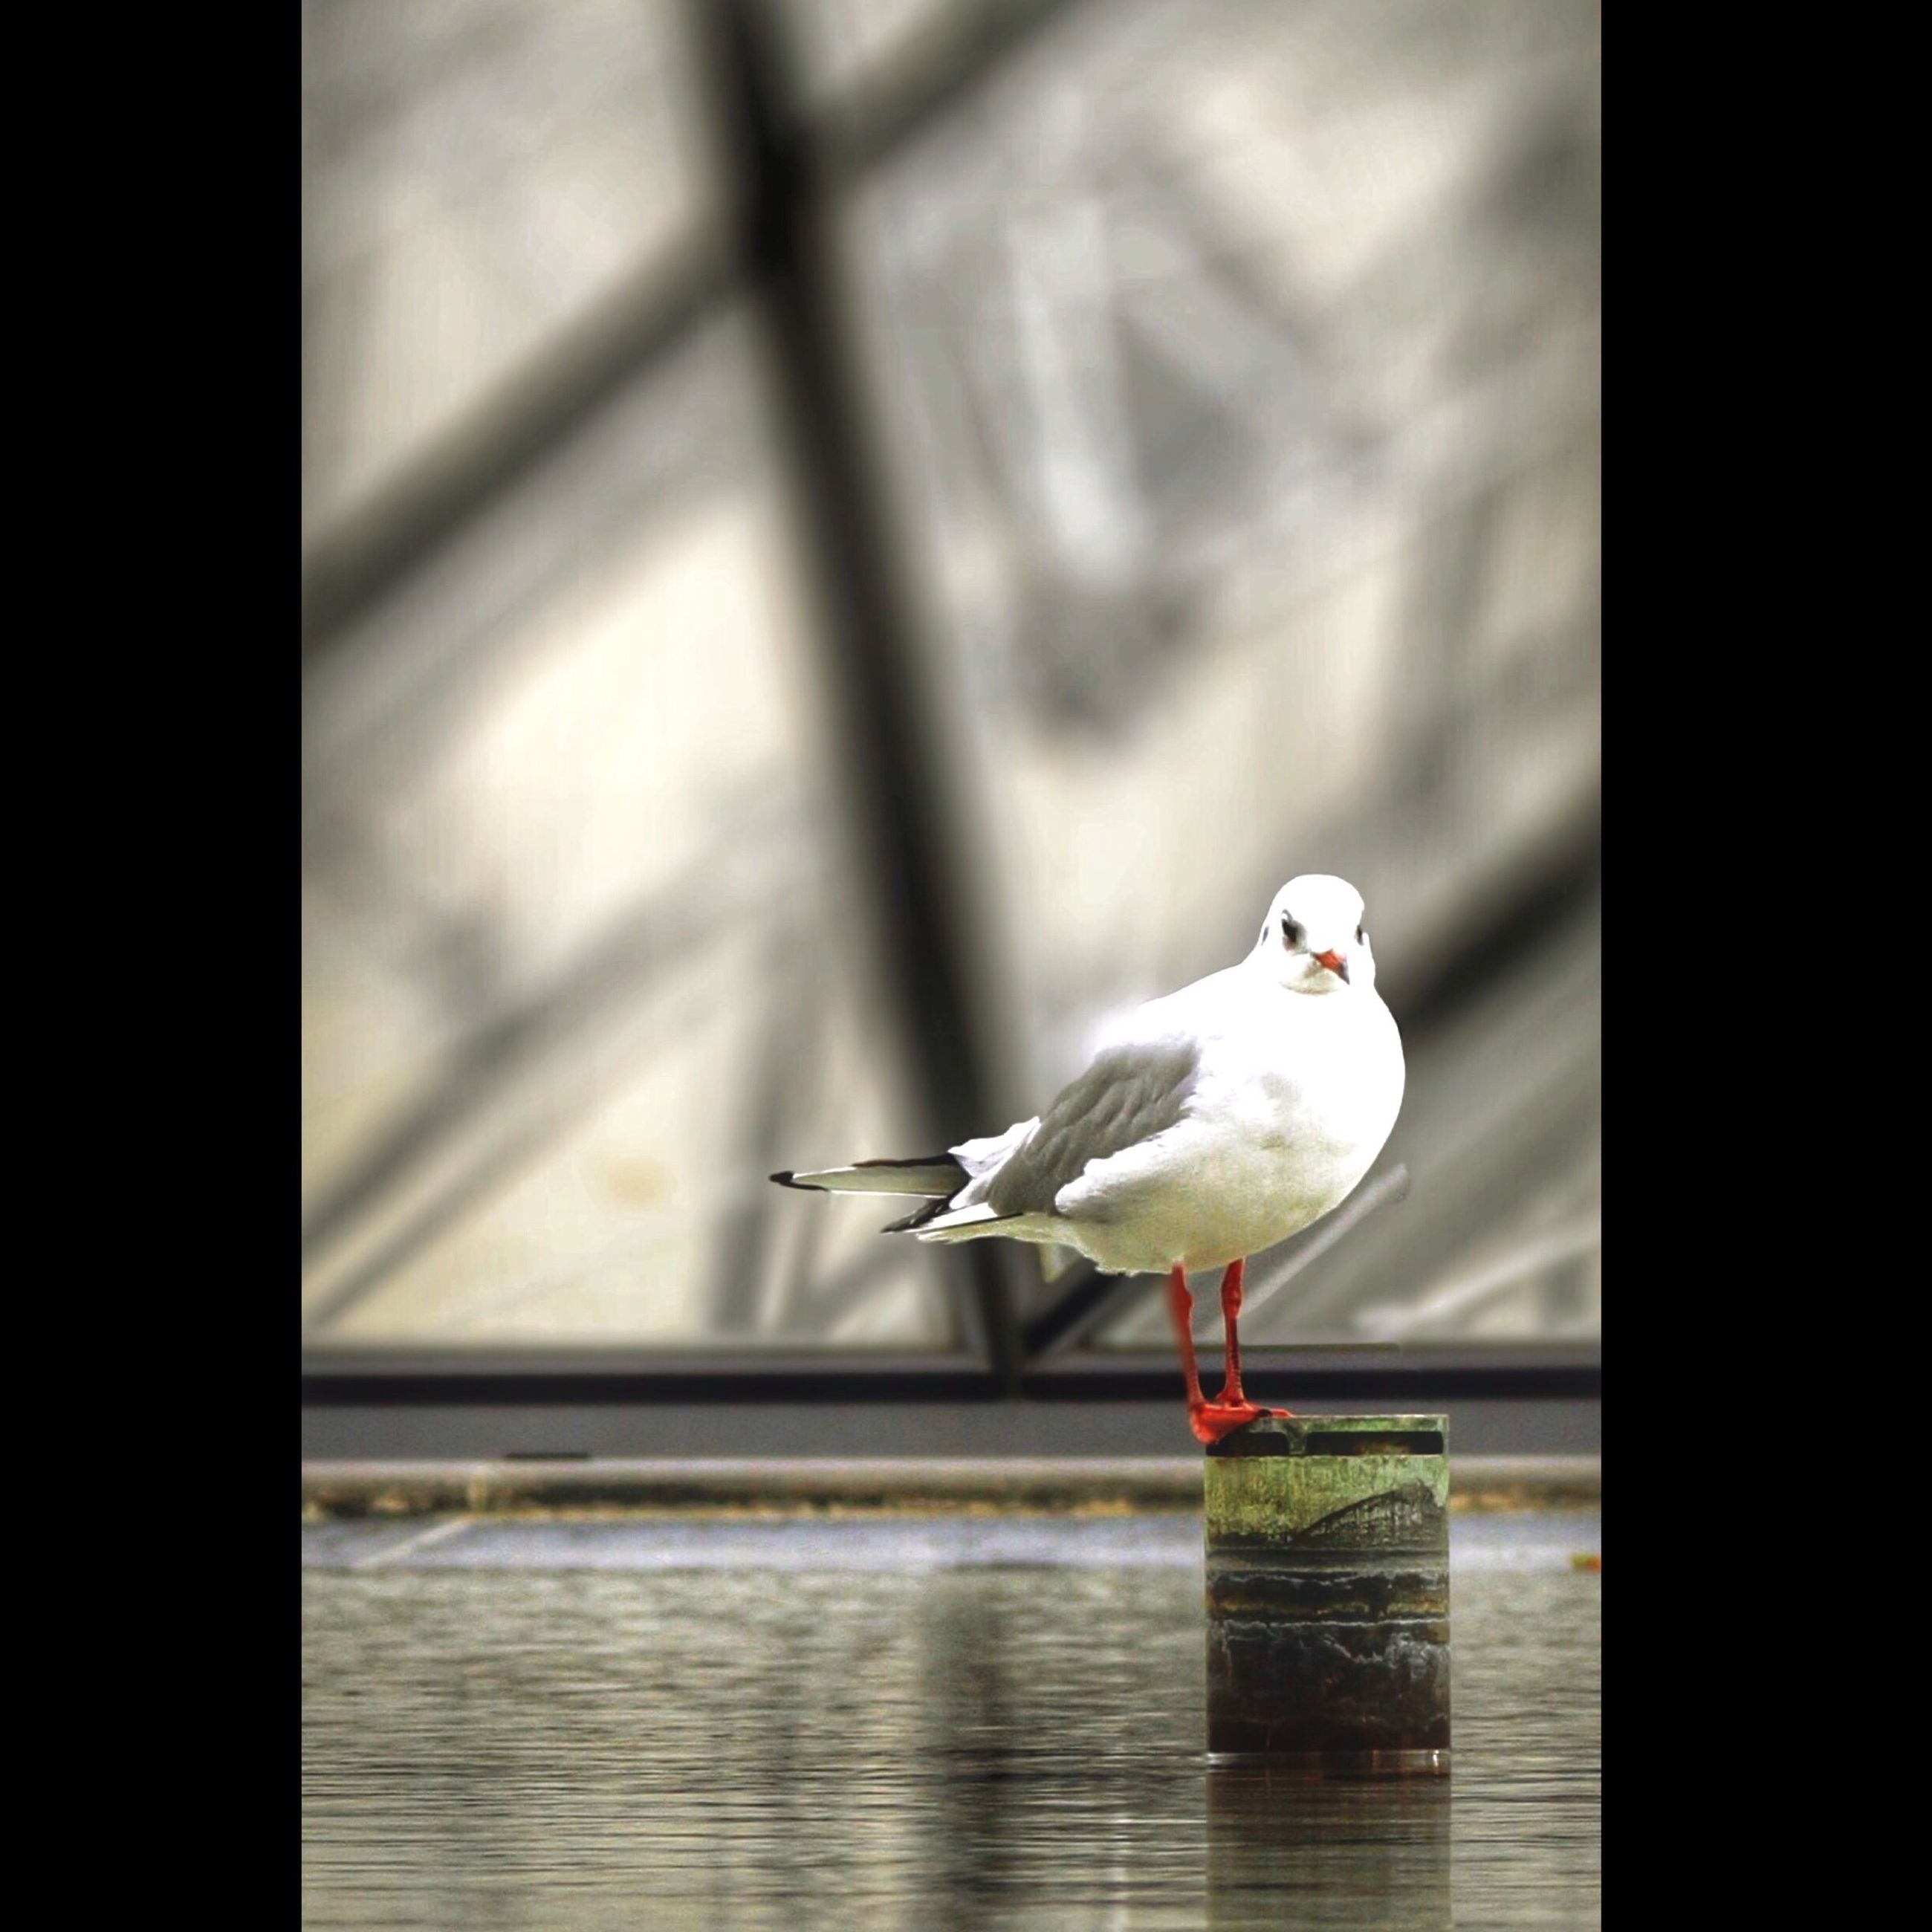 bird, animal themes, one animal, wildlife, animals in the wild, perching, seagull, water, focus on foreground, auto post production filter, transfer print, nature, indoors, full length, day, white color, close-up, no people, reflection